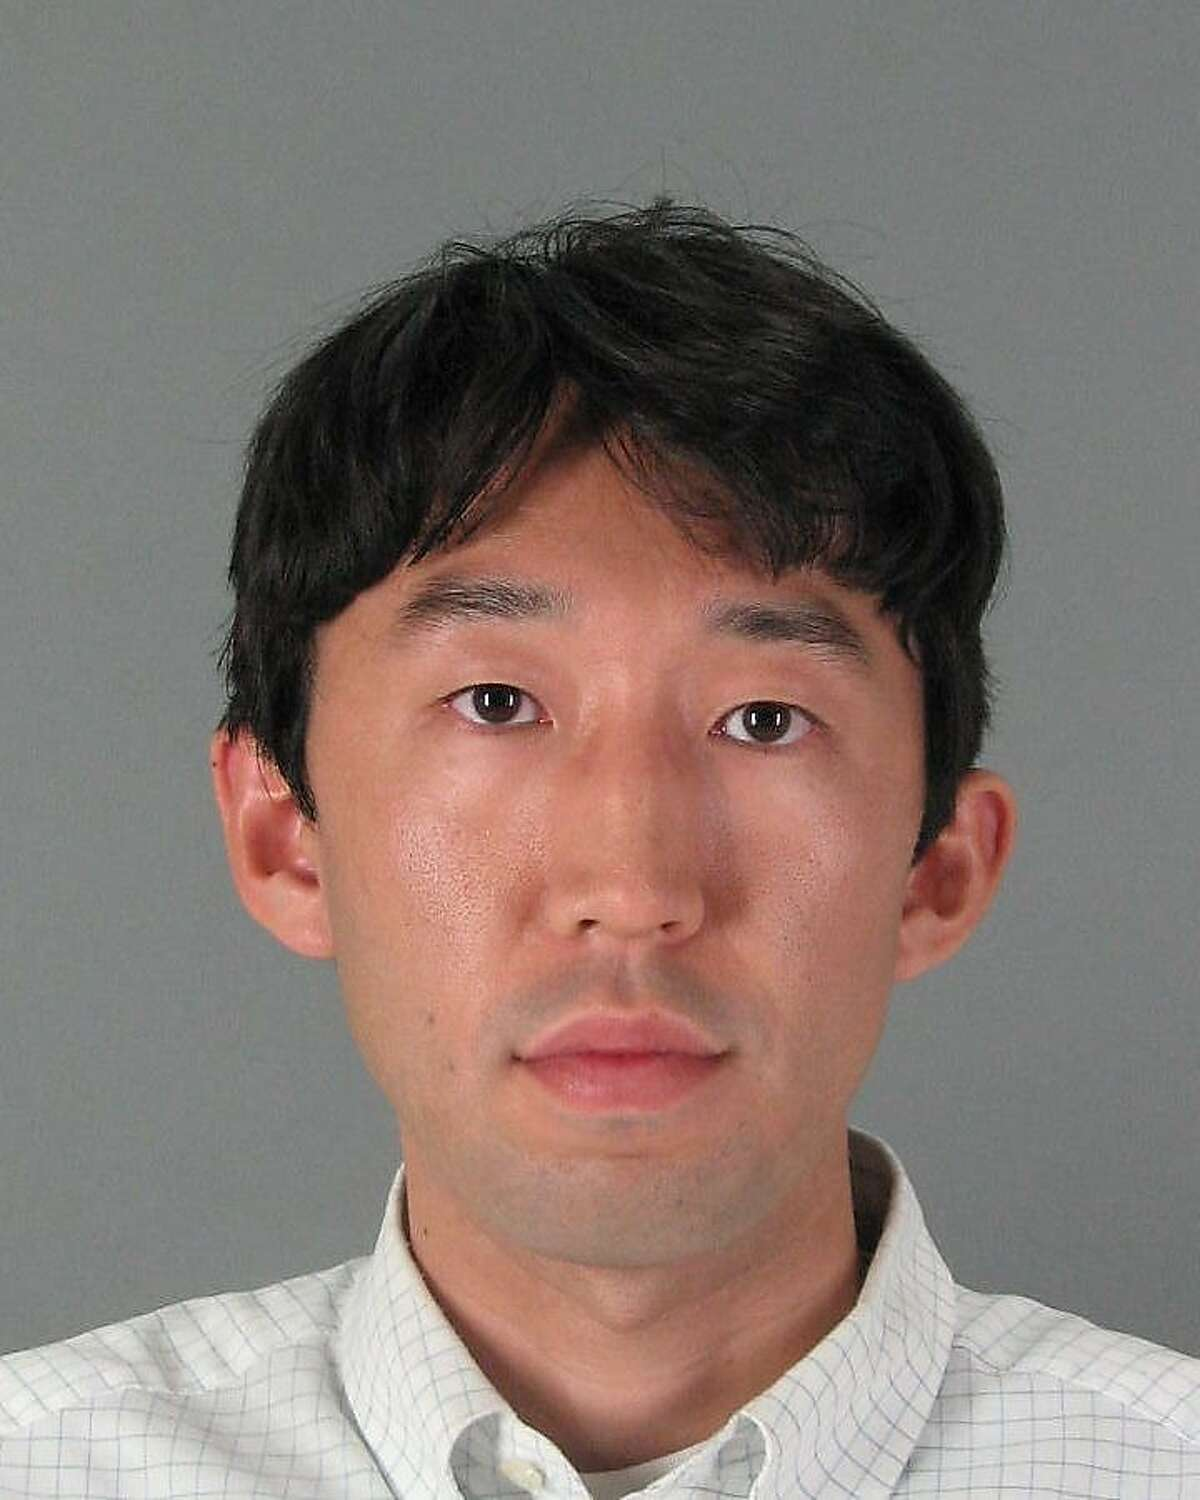 Yoshiaki Nagaya, 32, faces 16 charges related to domestic violence after police say he repeatedly injured his wife in San Mateo County. Nagaya, who is vice consul general for Japan, pleaded not guilty on Monday, May 7, 2012.